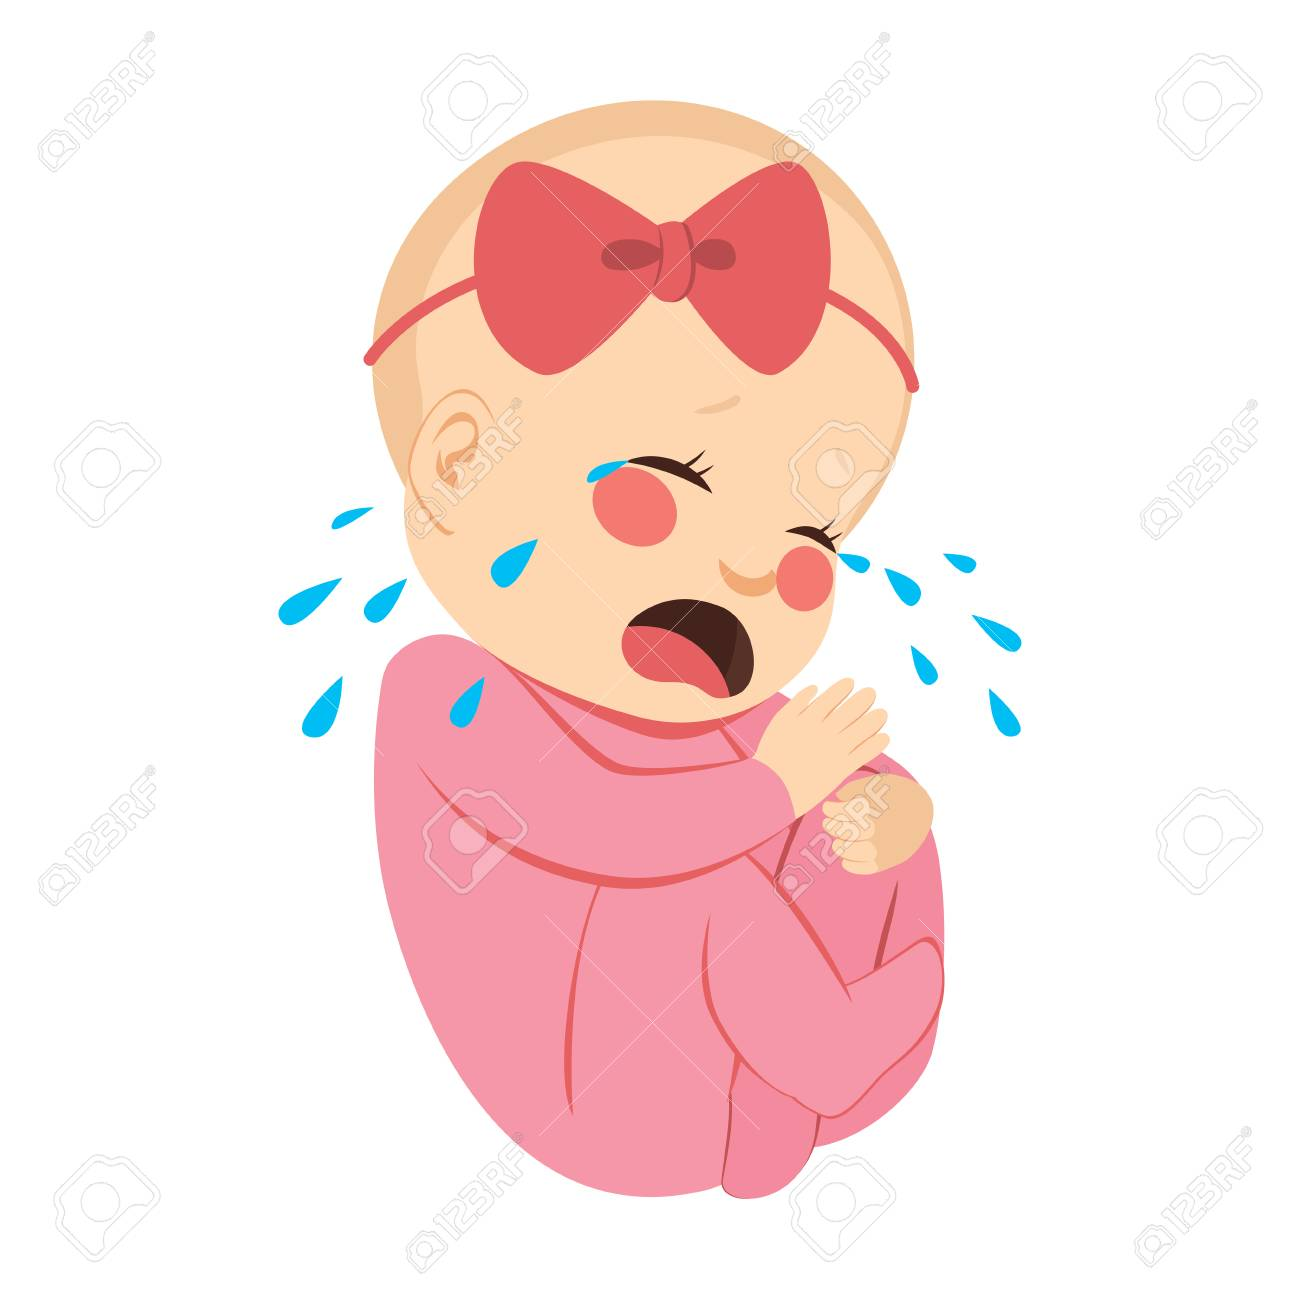 Little Newborn Baby Girl With Pink Romper And Head Band Ribbon Royalty Free Cliparts Vectors And Stock Illustration Image 118899737